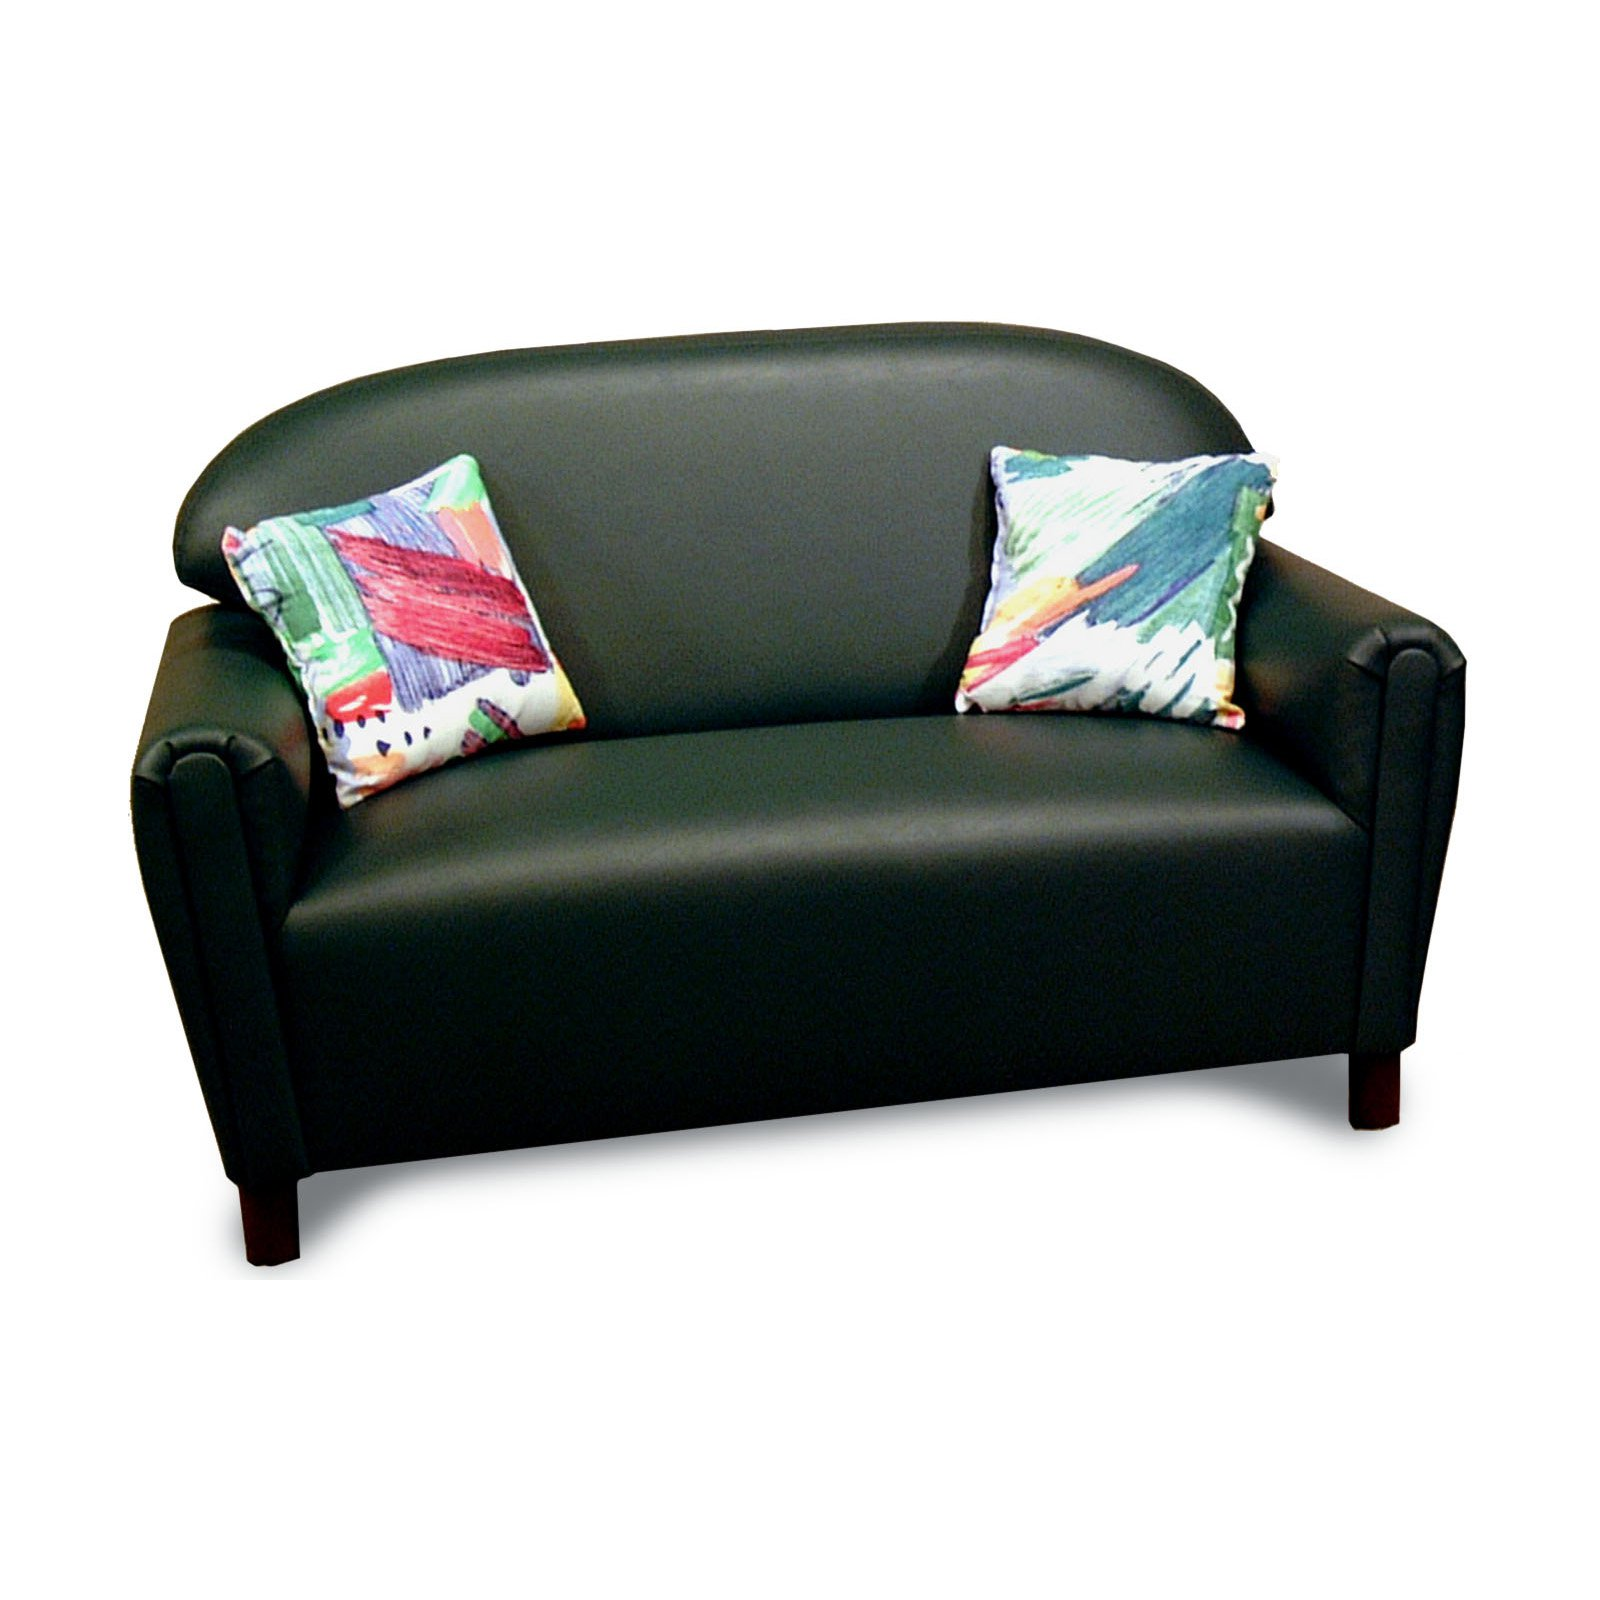 Brand New World Vinyl Upholstered School Age Sofa